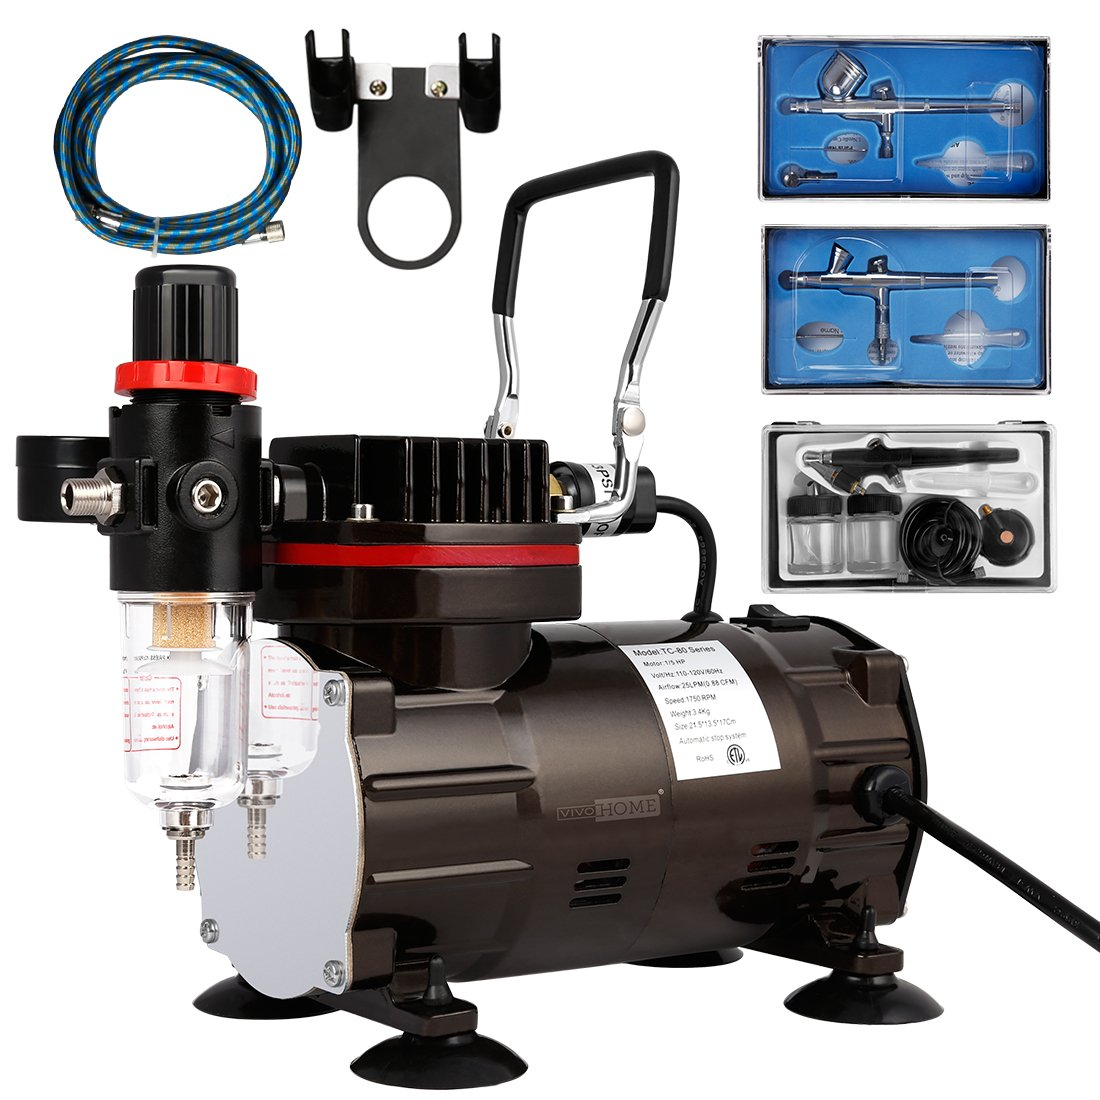 VIVOHOME 110-120V Professional Airbrushing Paint System with 1/5 HP Air Compressor and 3 Airbrush Kits ETL Certified by VIVOHOME